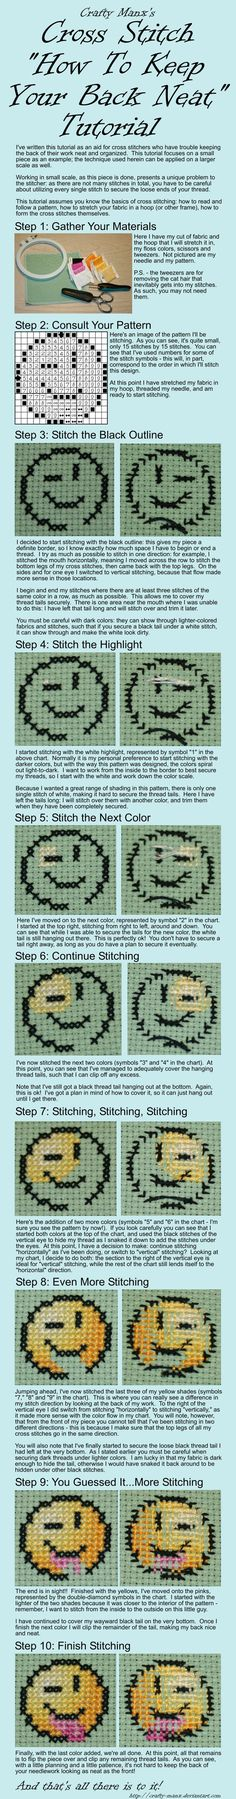 "Cross Stitch Kits Cross Stitch ""How To Keep Your Back Neat"" Tutorial I've written this tutorial as an aid to cross stitchers who have trouble keeping the back of their work neat. A neat back not only looks nice. Cross Stitch Finishing, Cross Stitch Love, Modern Cross Stitch, Cross Stitch Flowers, Cross Stitch Kits, Cross Stitch Charts, Cross Stitch Designs, Cross Stitch Patterns, Cross Stitching"